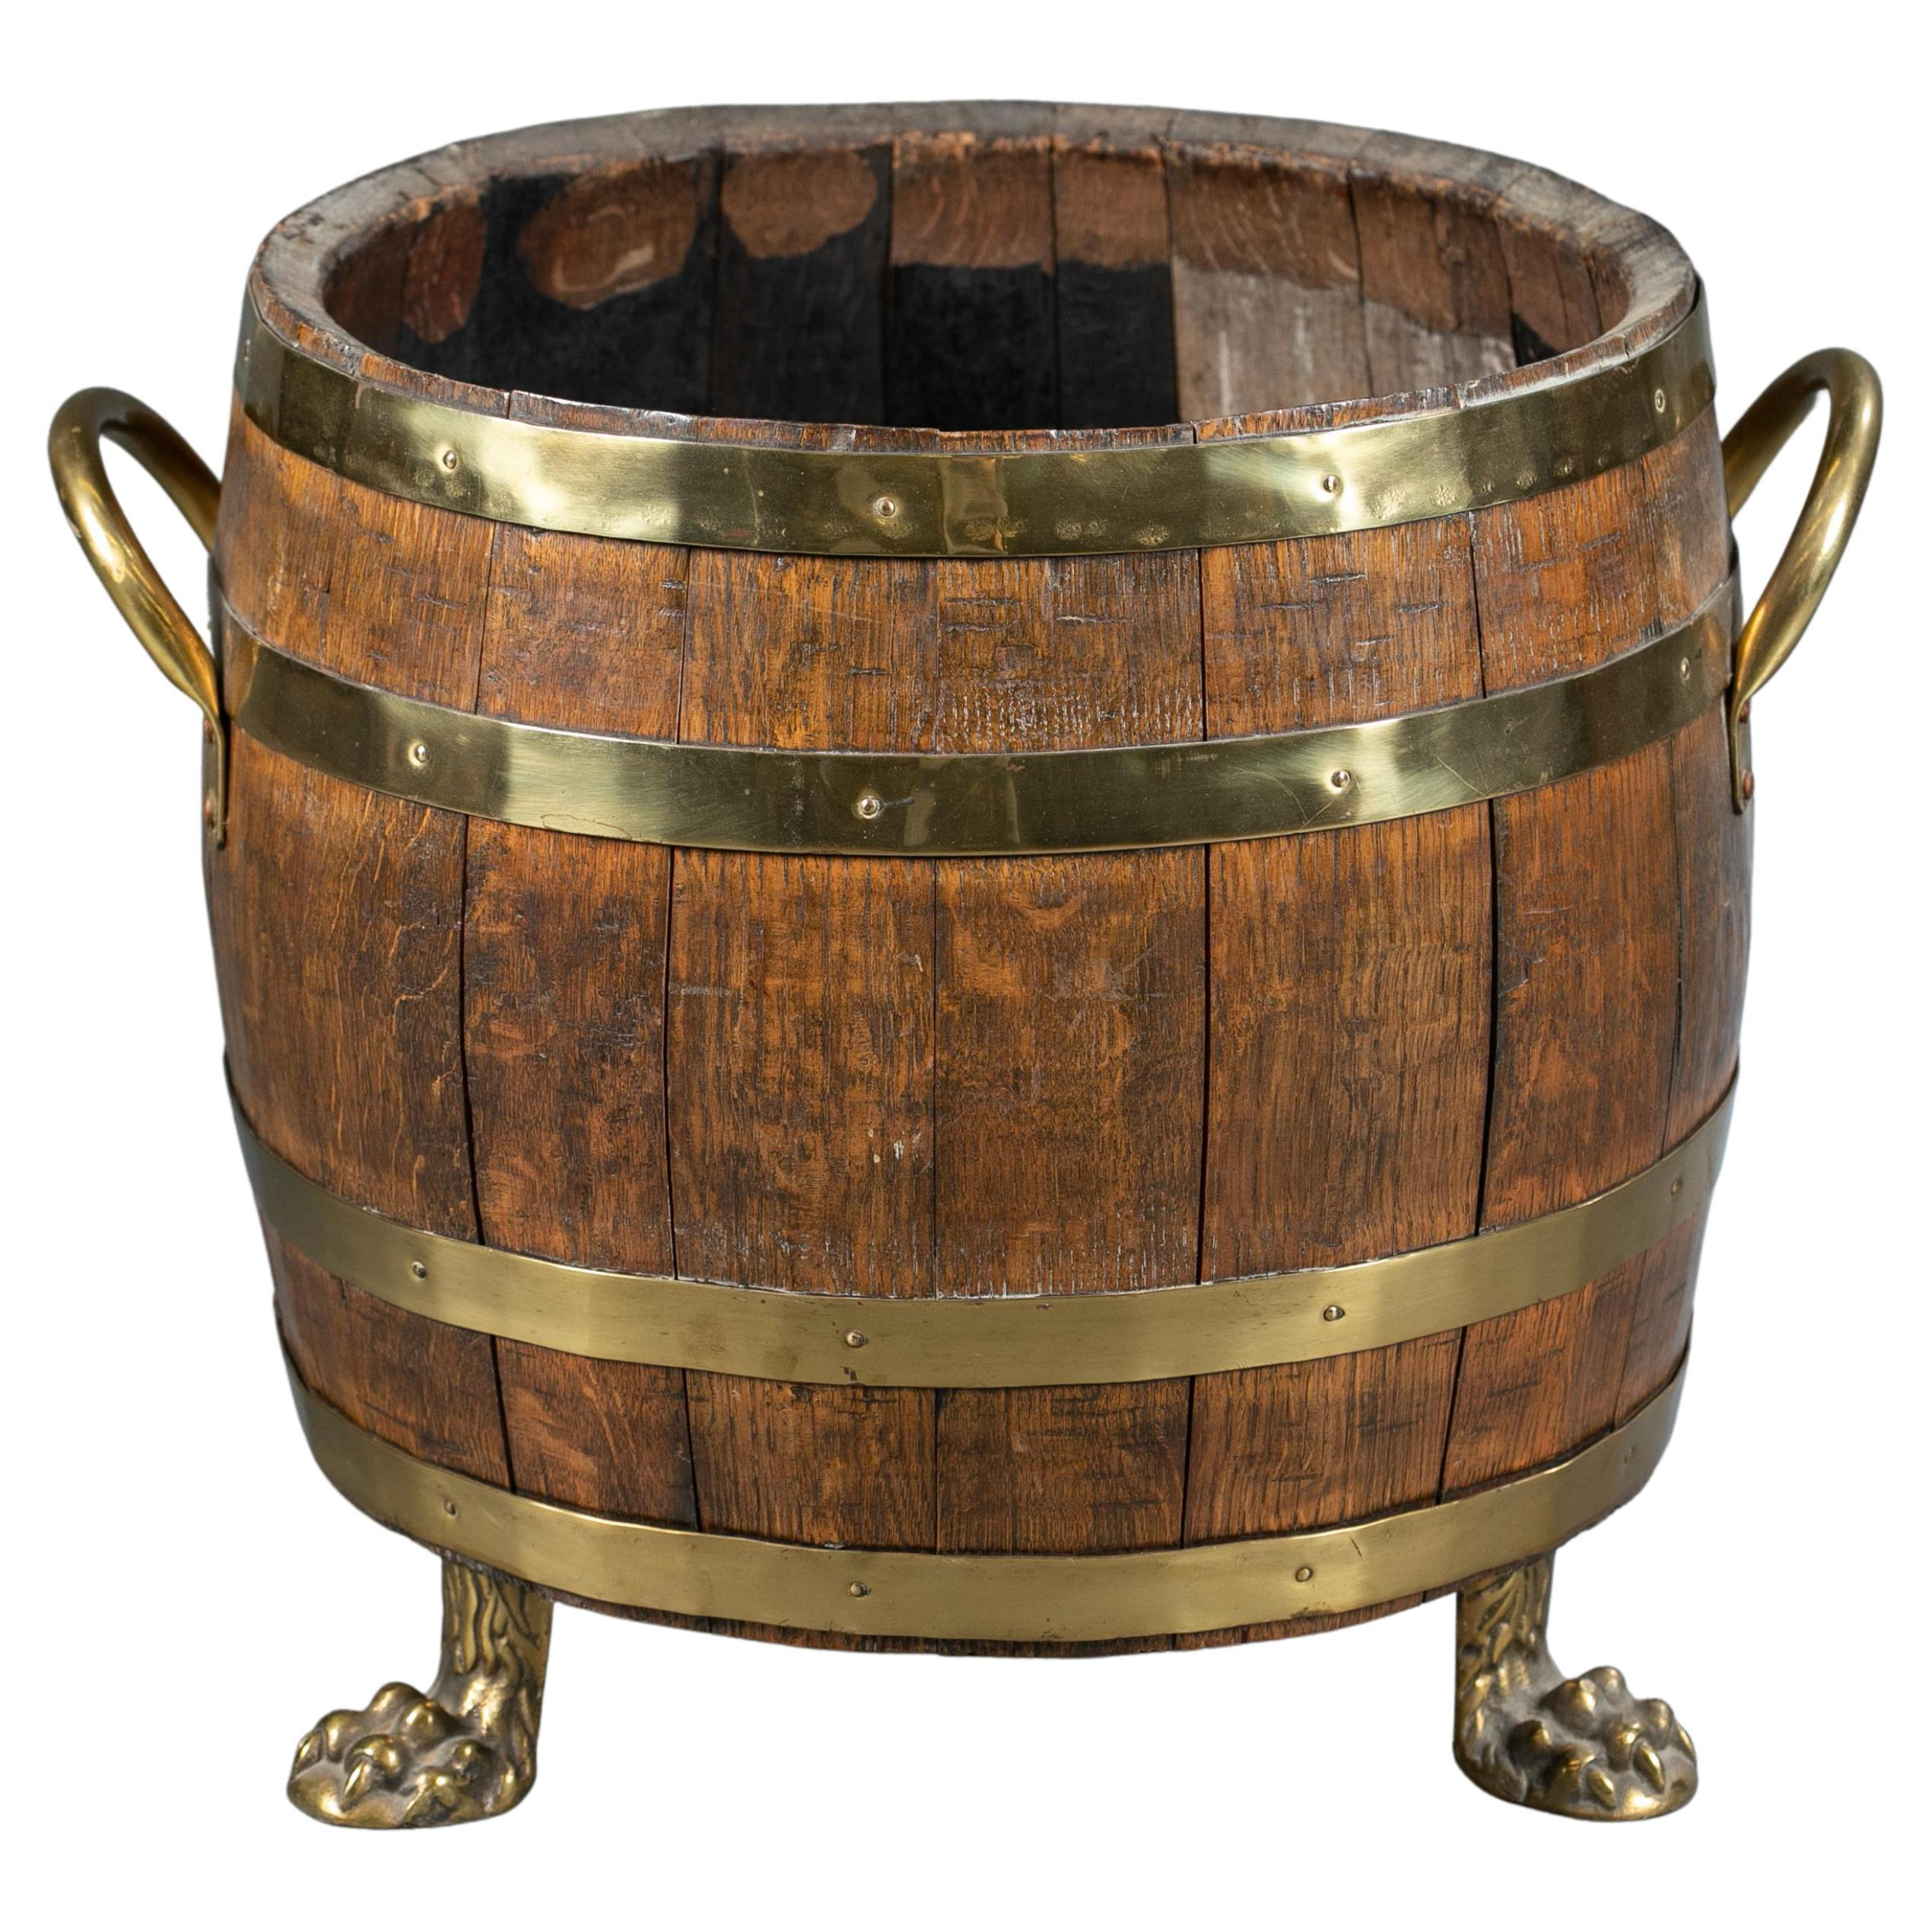 English Oak and Brass Barrel Shaped Cellarette with Paw Feet